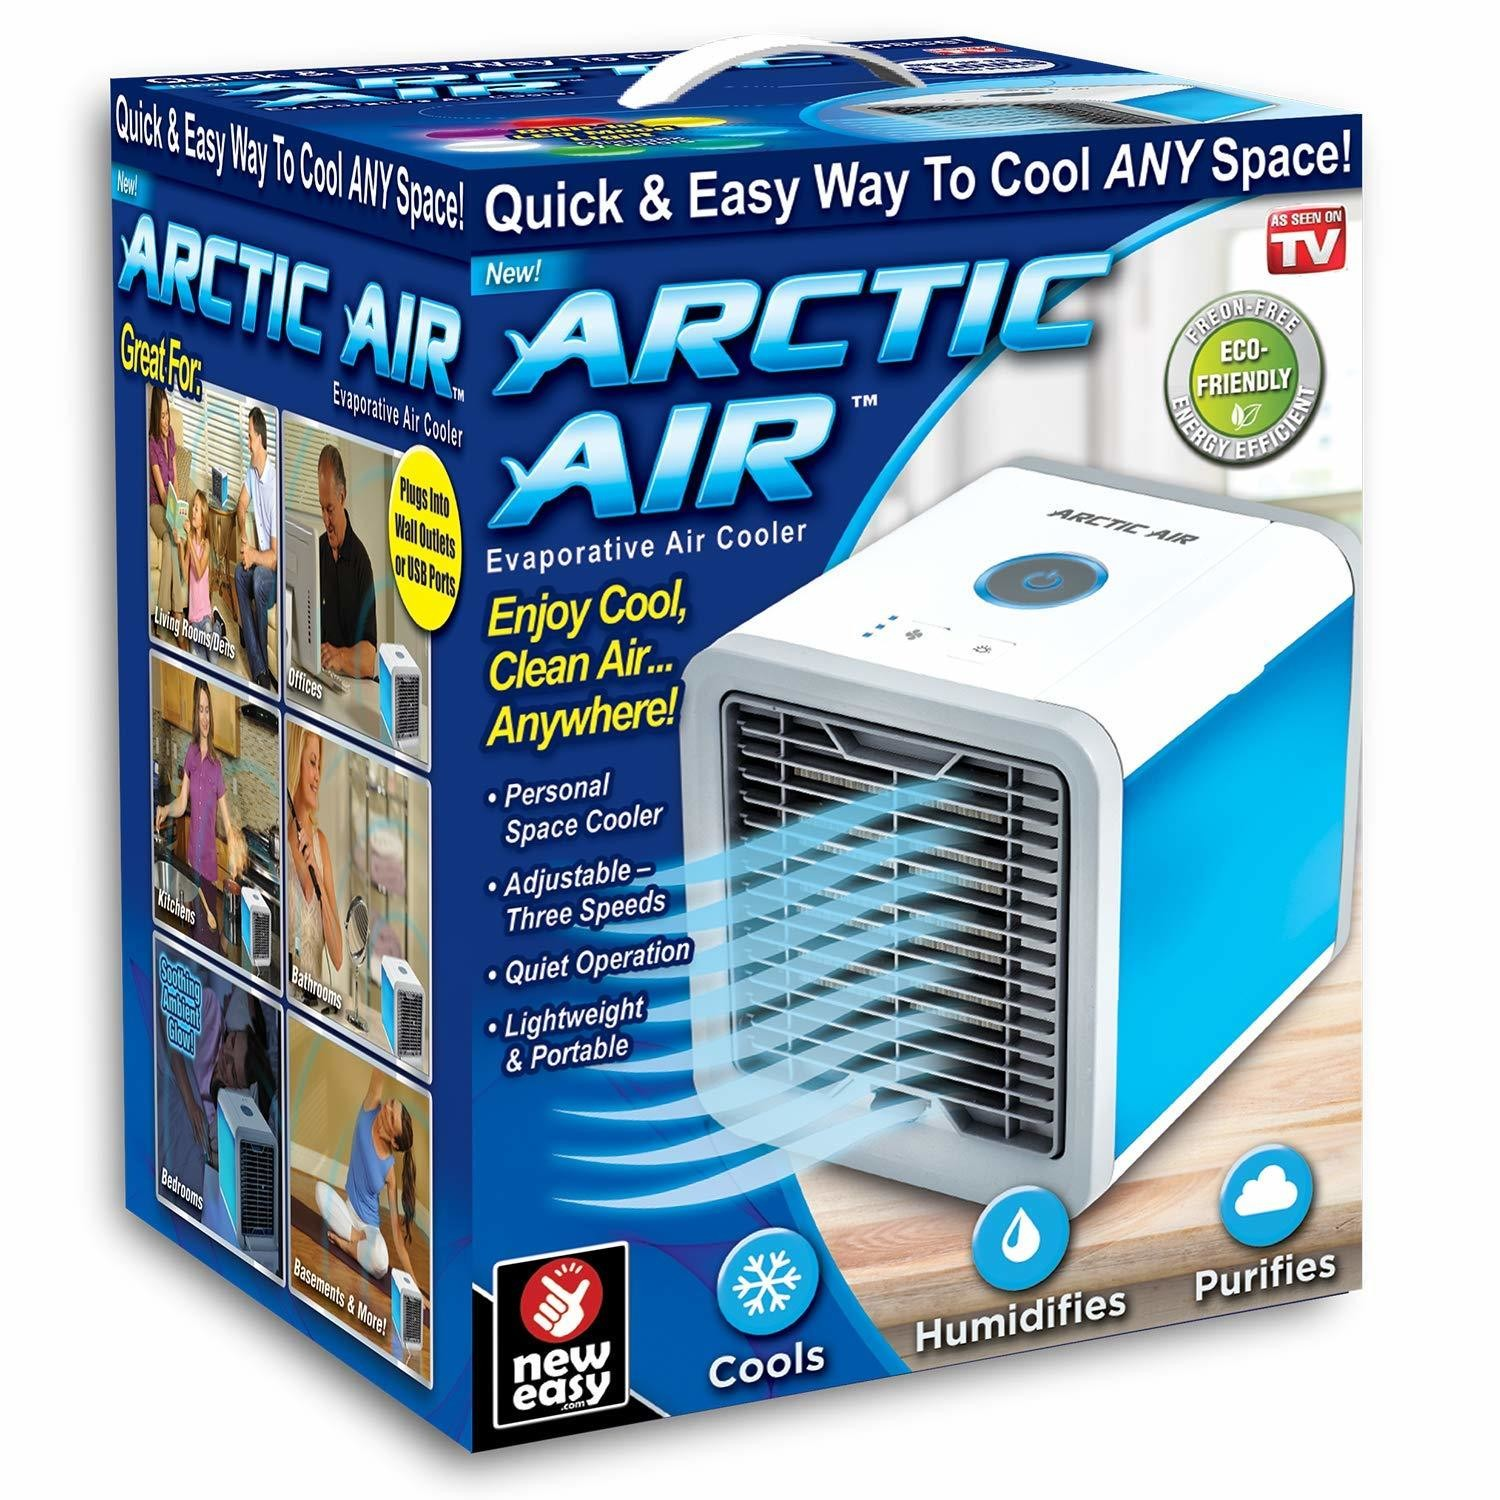 Mini Air Cooler Refroidisseur Purificateur et Humidifiant d'Air - Personal Air Cooler White Climatiseur (MODELE PRECEDENT)